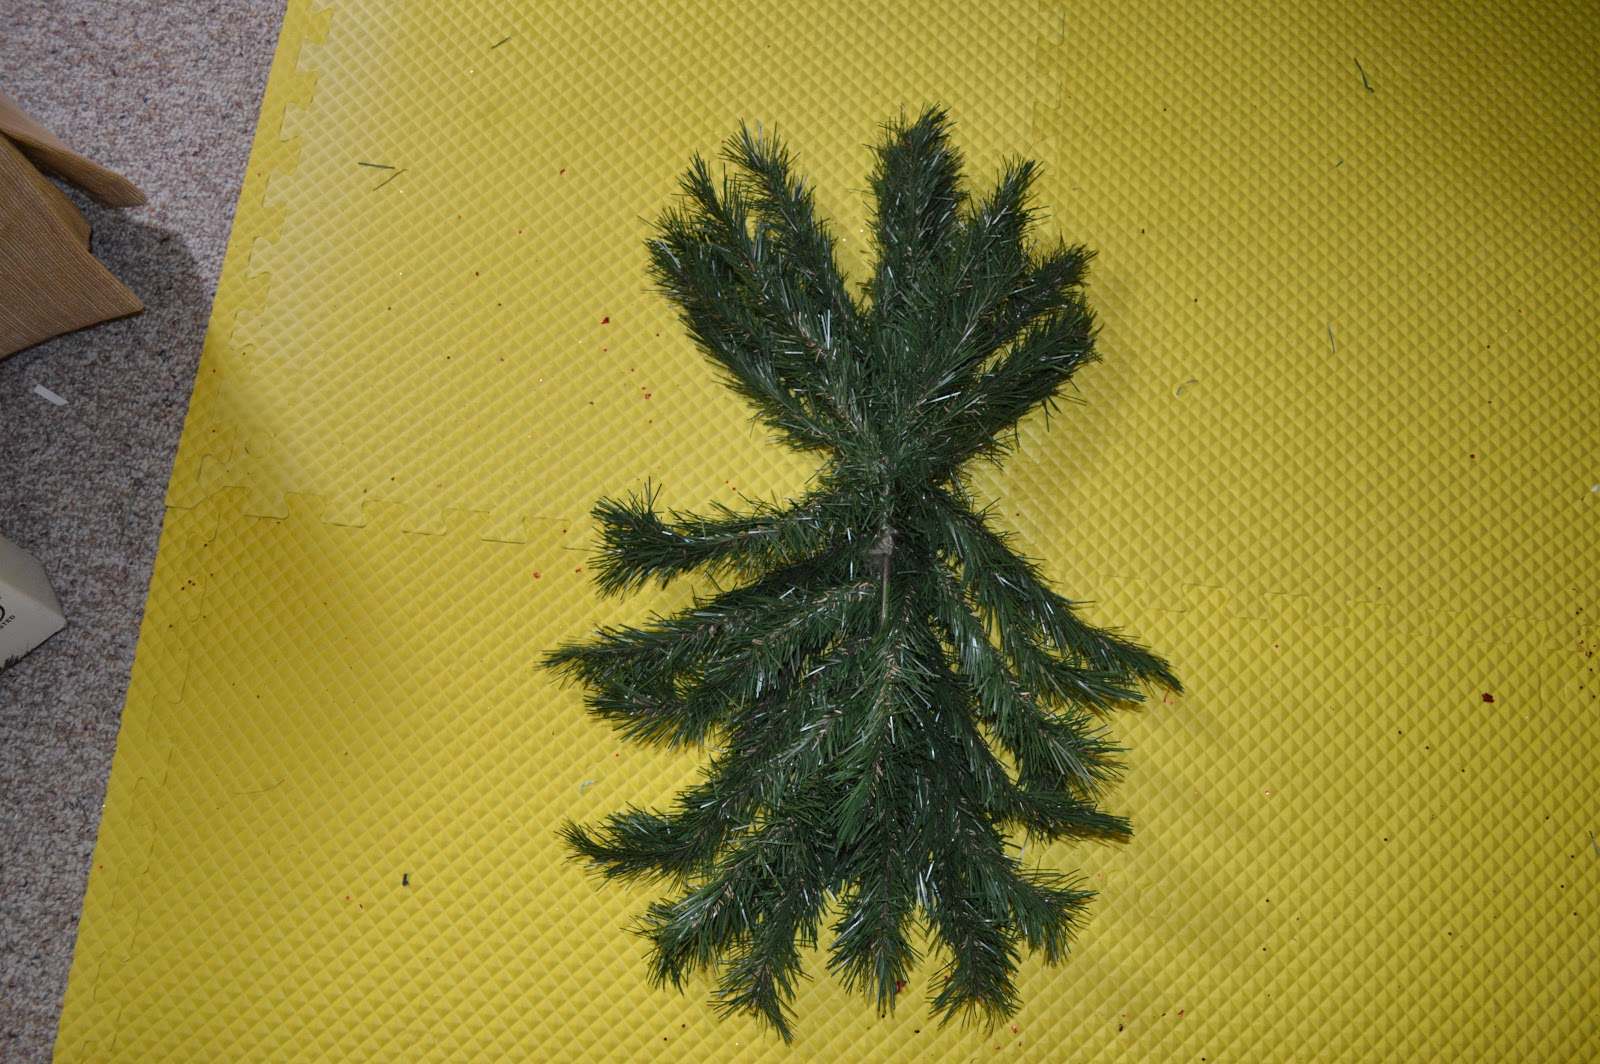 Sew Much To Give: Recycled Christmas Tree Branches into a Swag